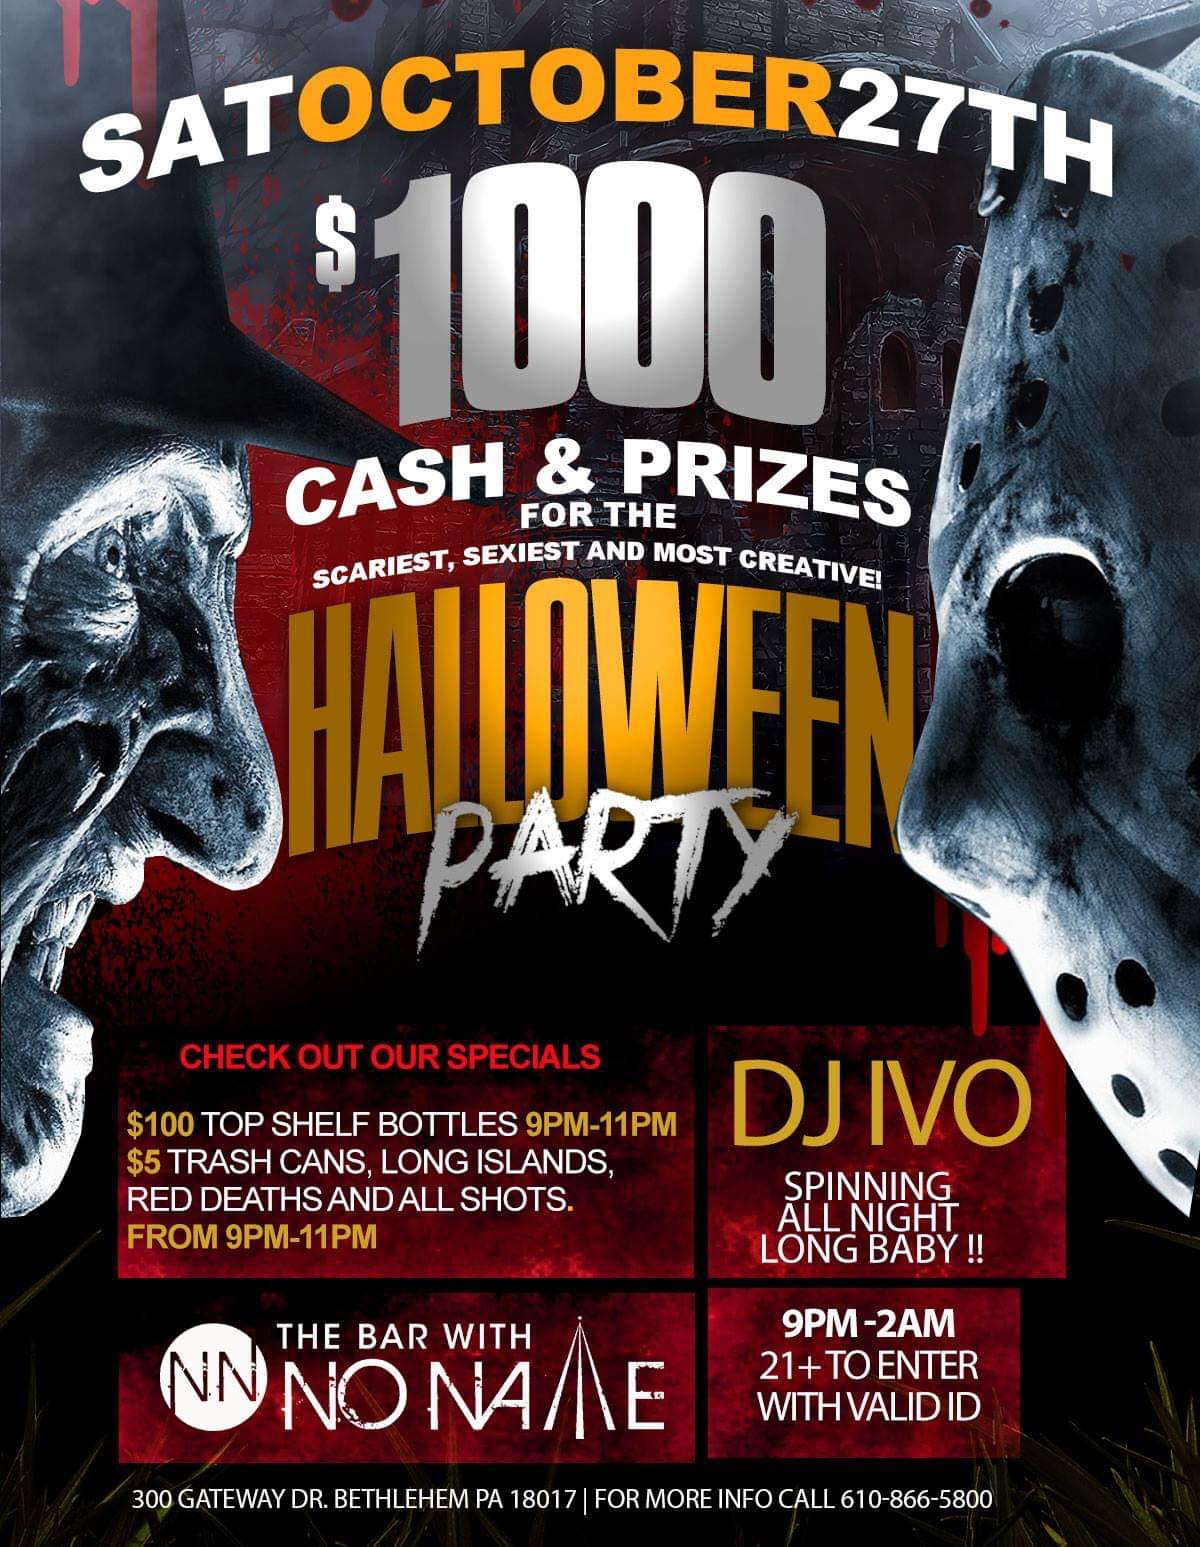 Saturday Halloween Party with costume competititon